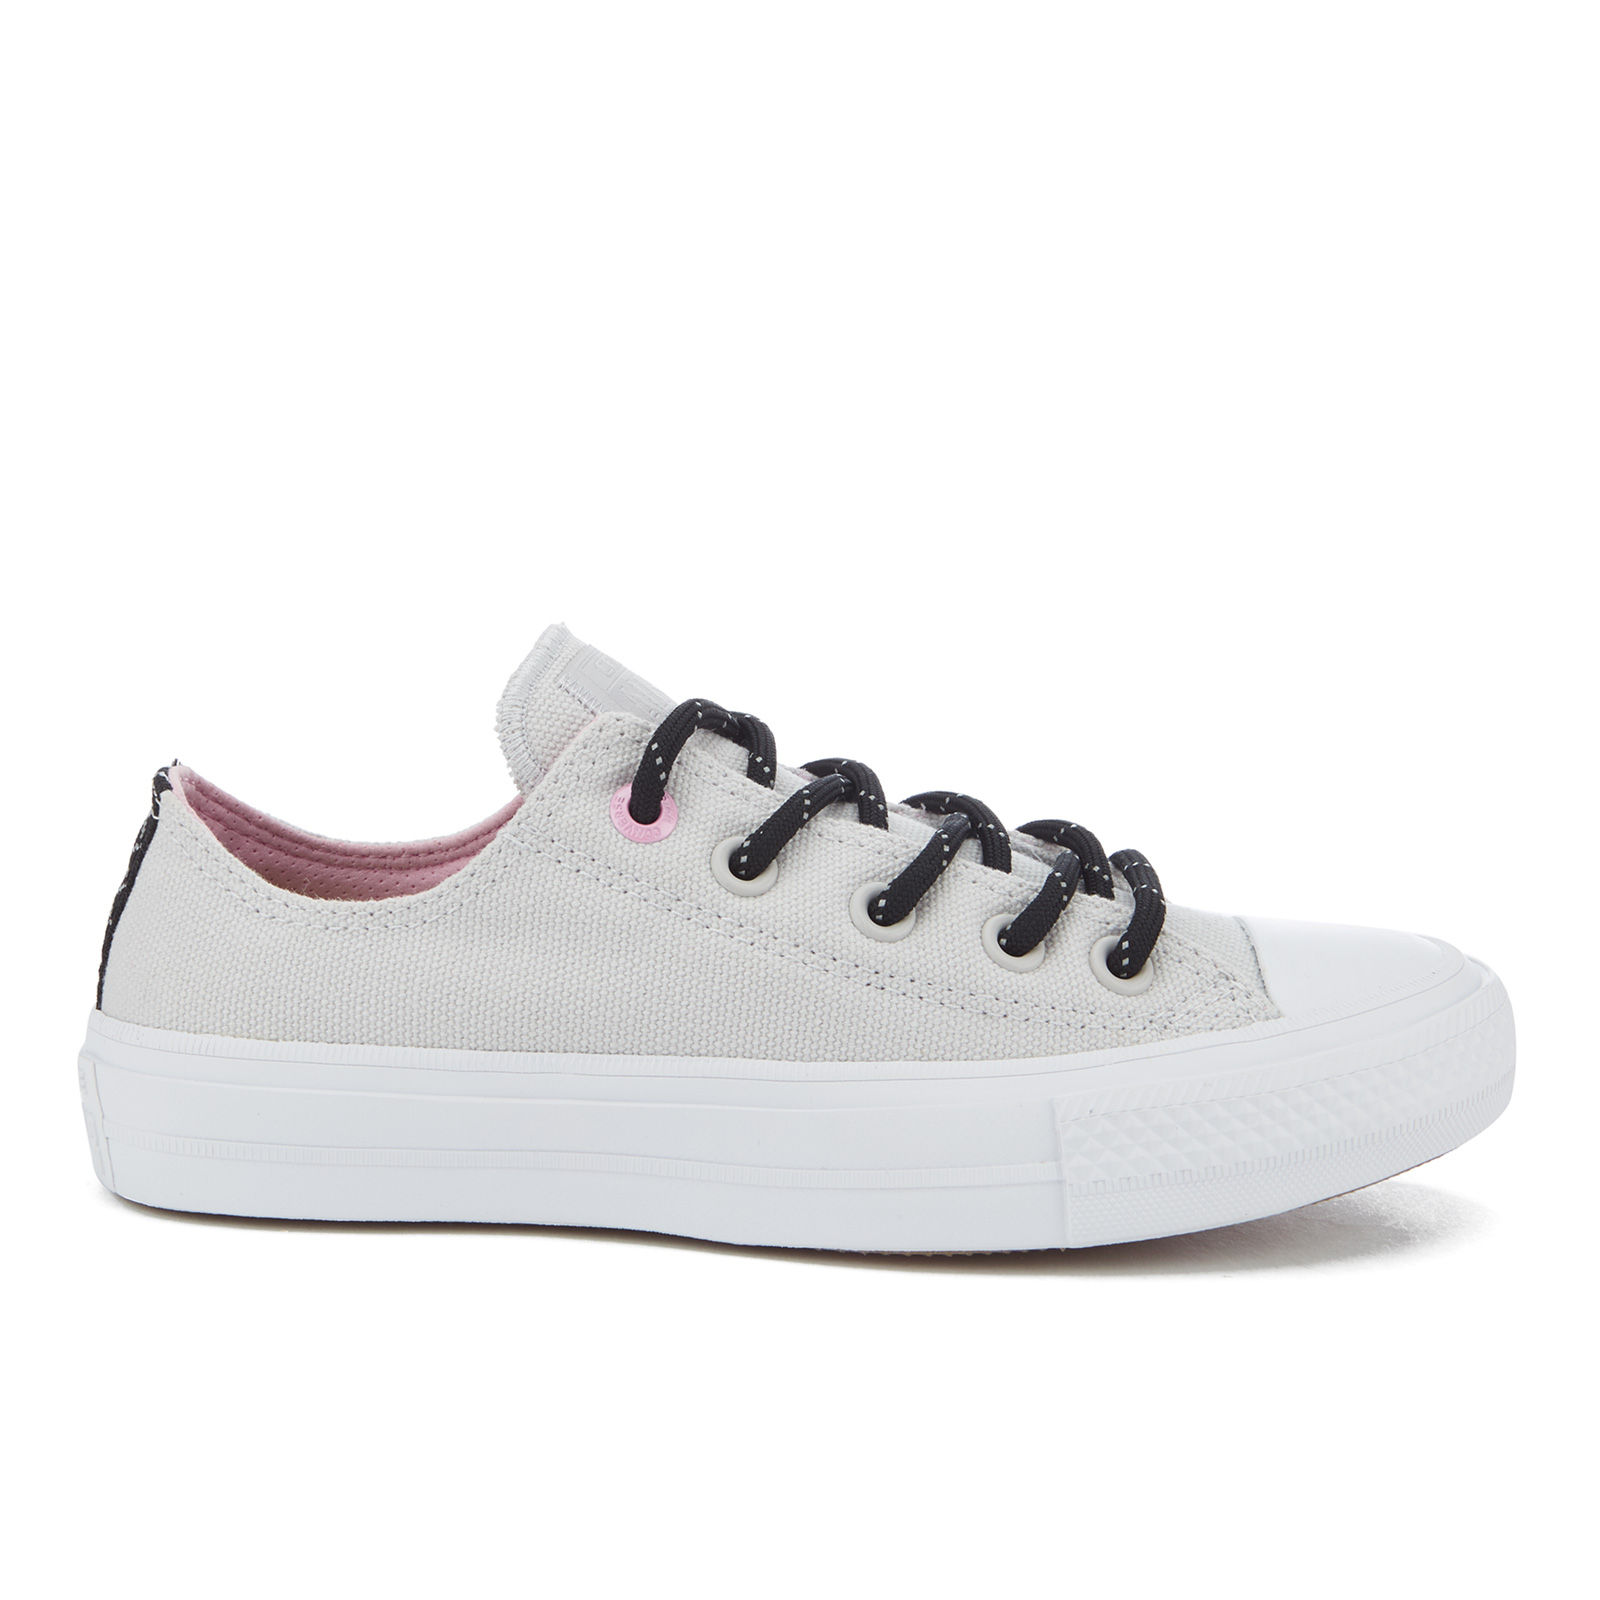 d684562ab7eec7 Converse Women s Chuck Taylor All Star II Shield Canvas Ox Trainers -  Mouse White Icy Pink - Free UK Delivery over £50